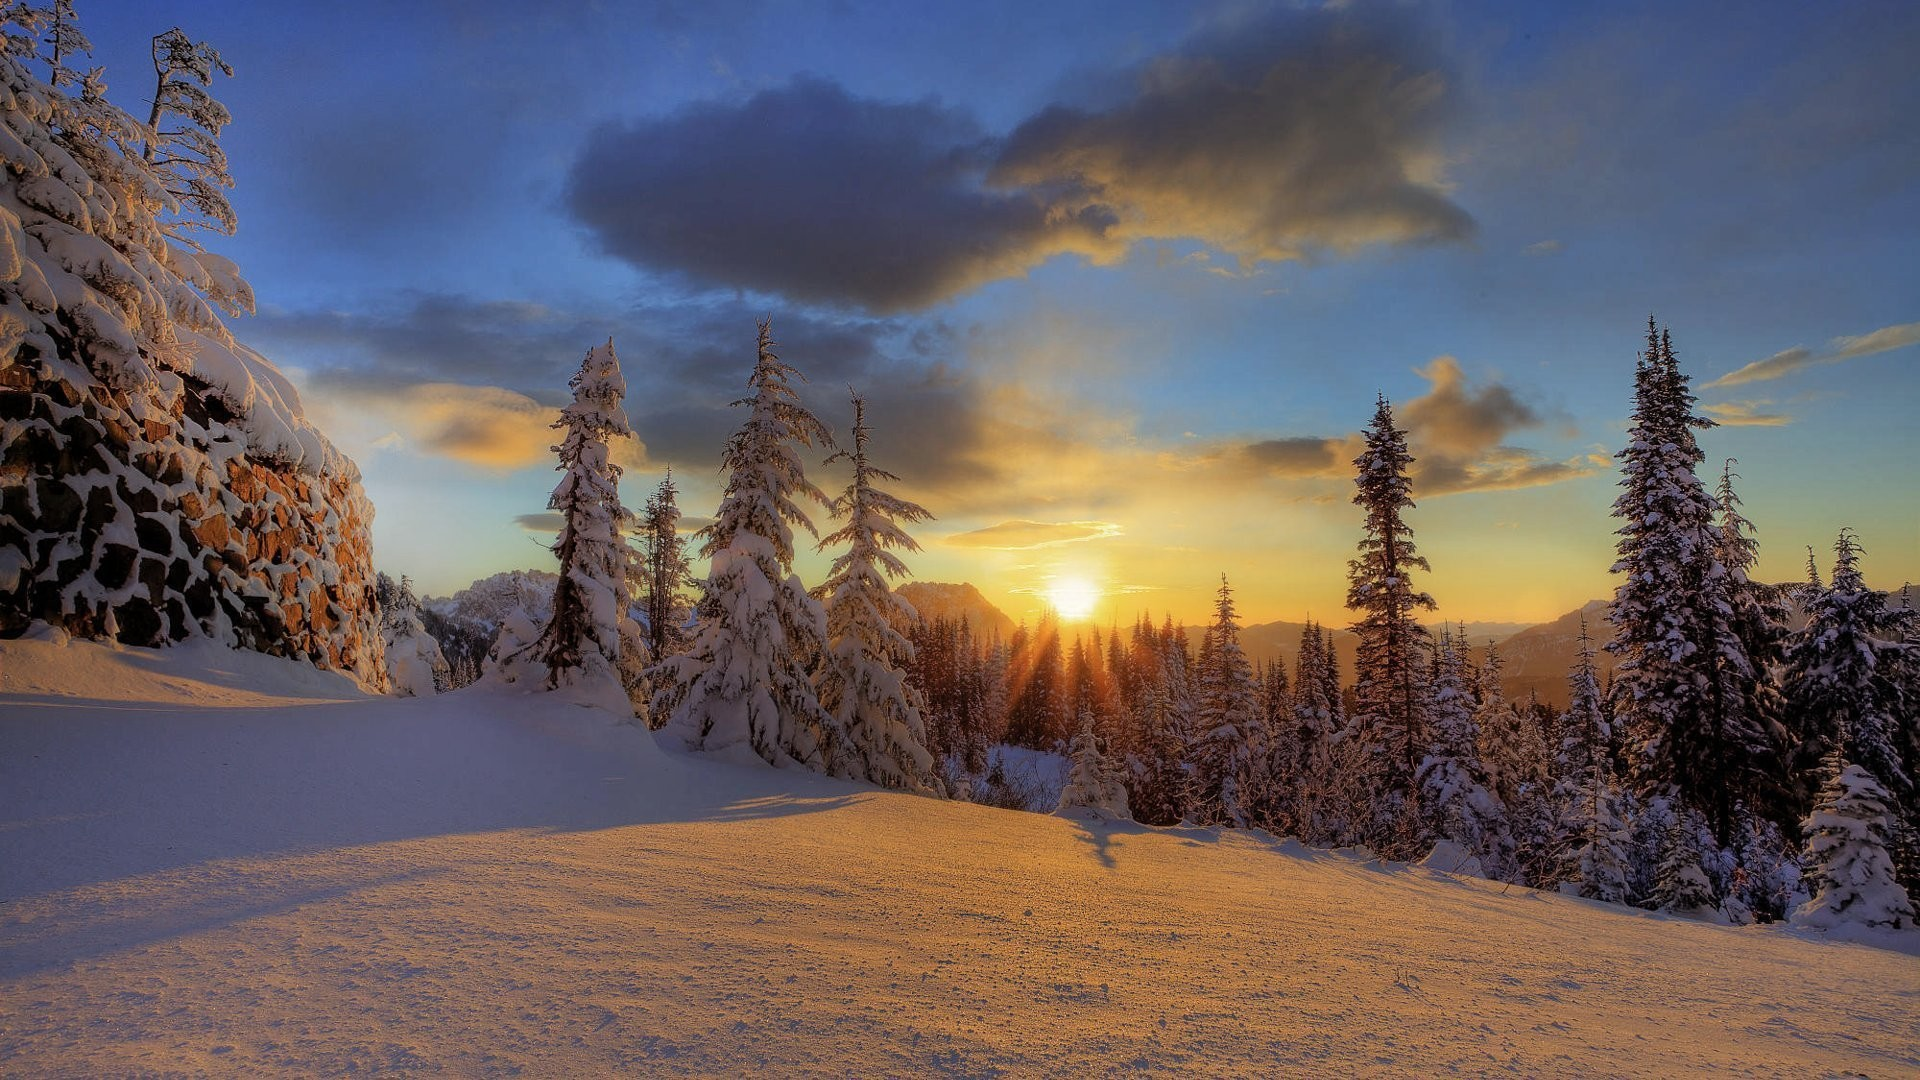 1920x1080 mount rainier national park winter forest snow mountain